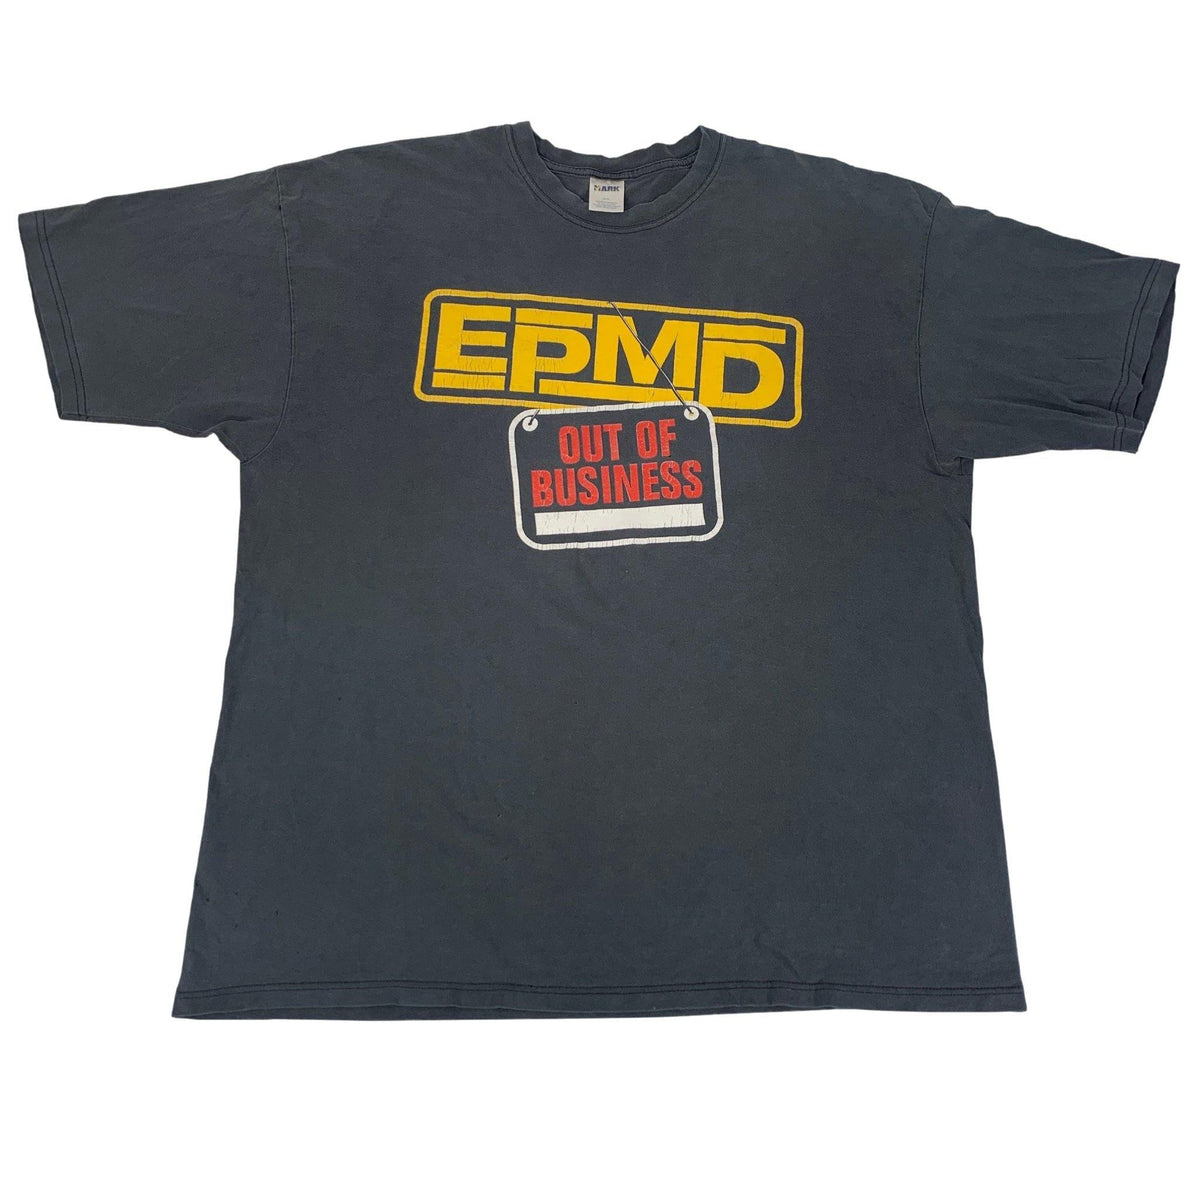 "Vintage 1999 EPMD ""Out Of Business"" Promo T-Shirt - jointcustodydc"